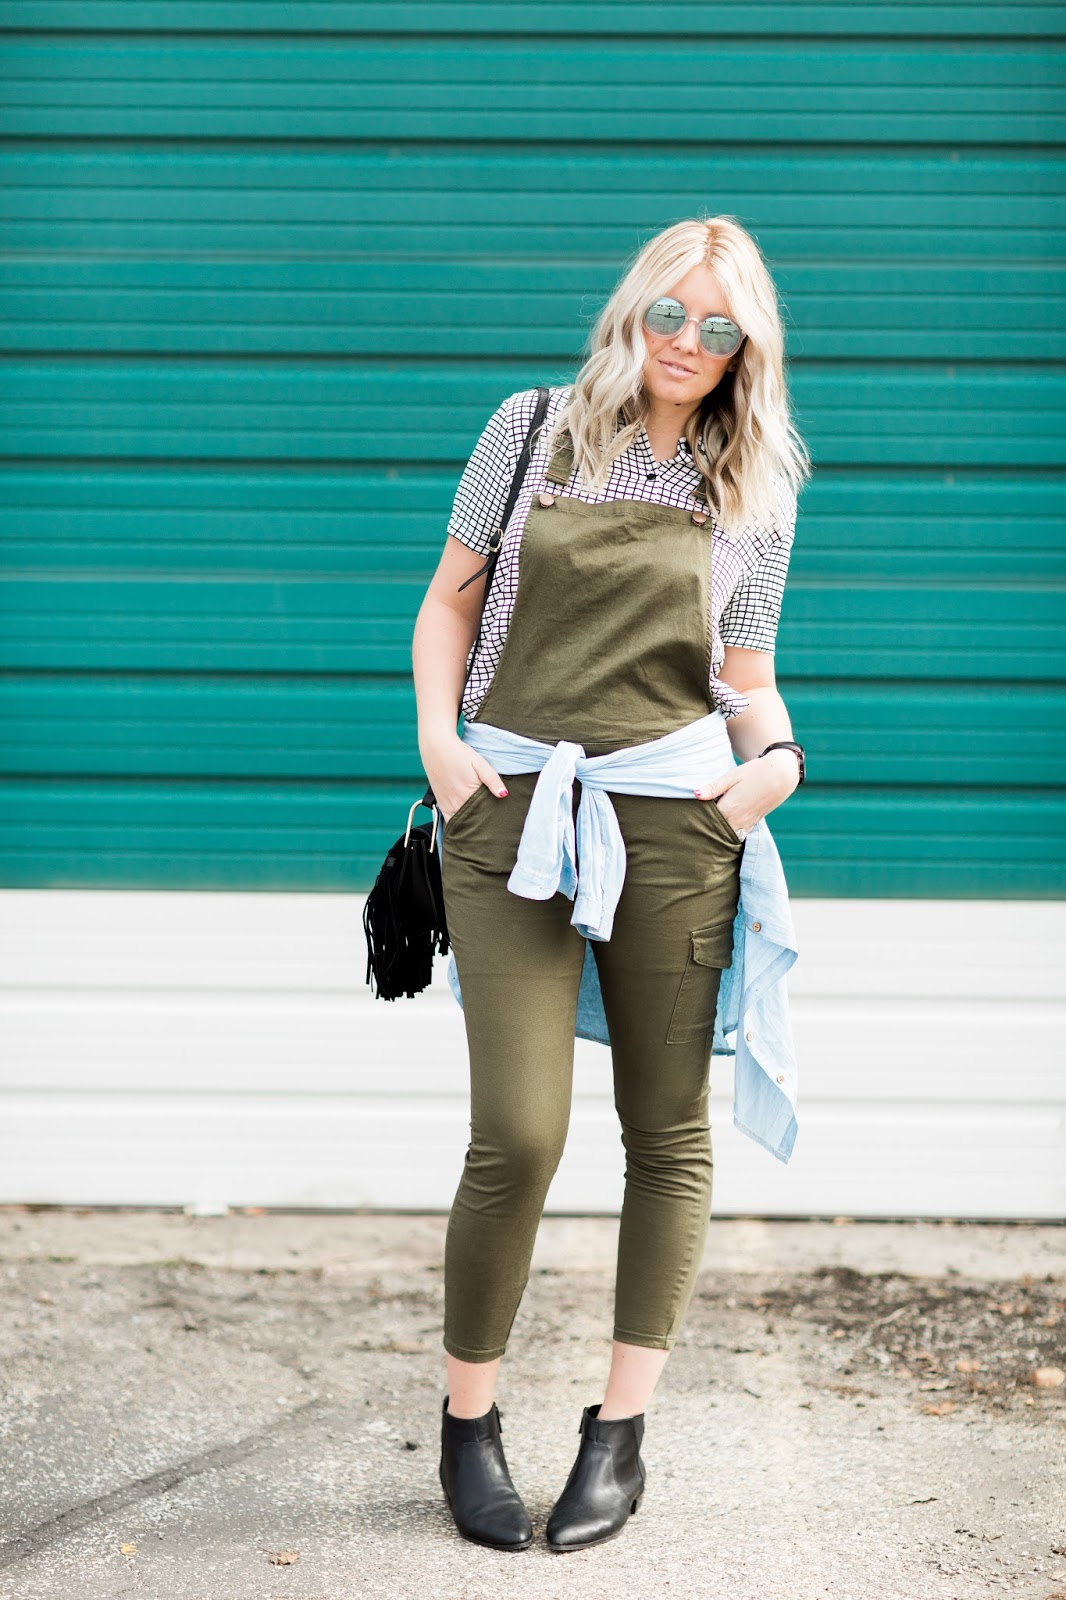 Overalls, Button Up Shirt, Spring Outfit